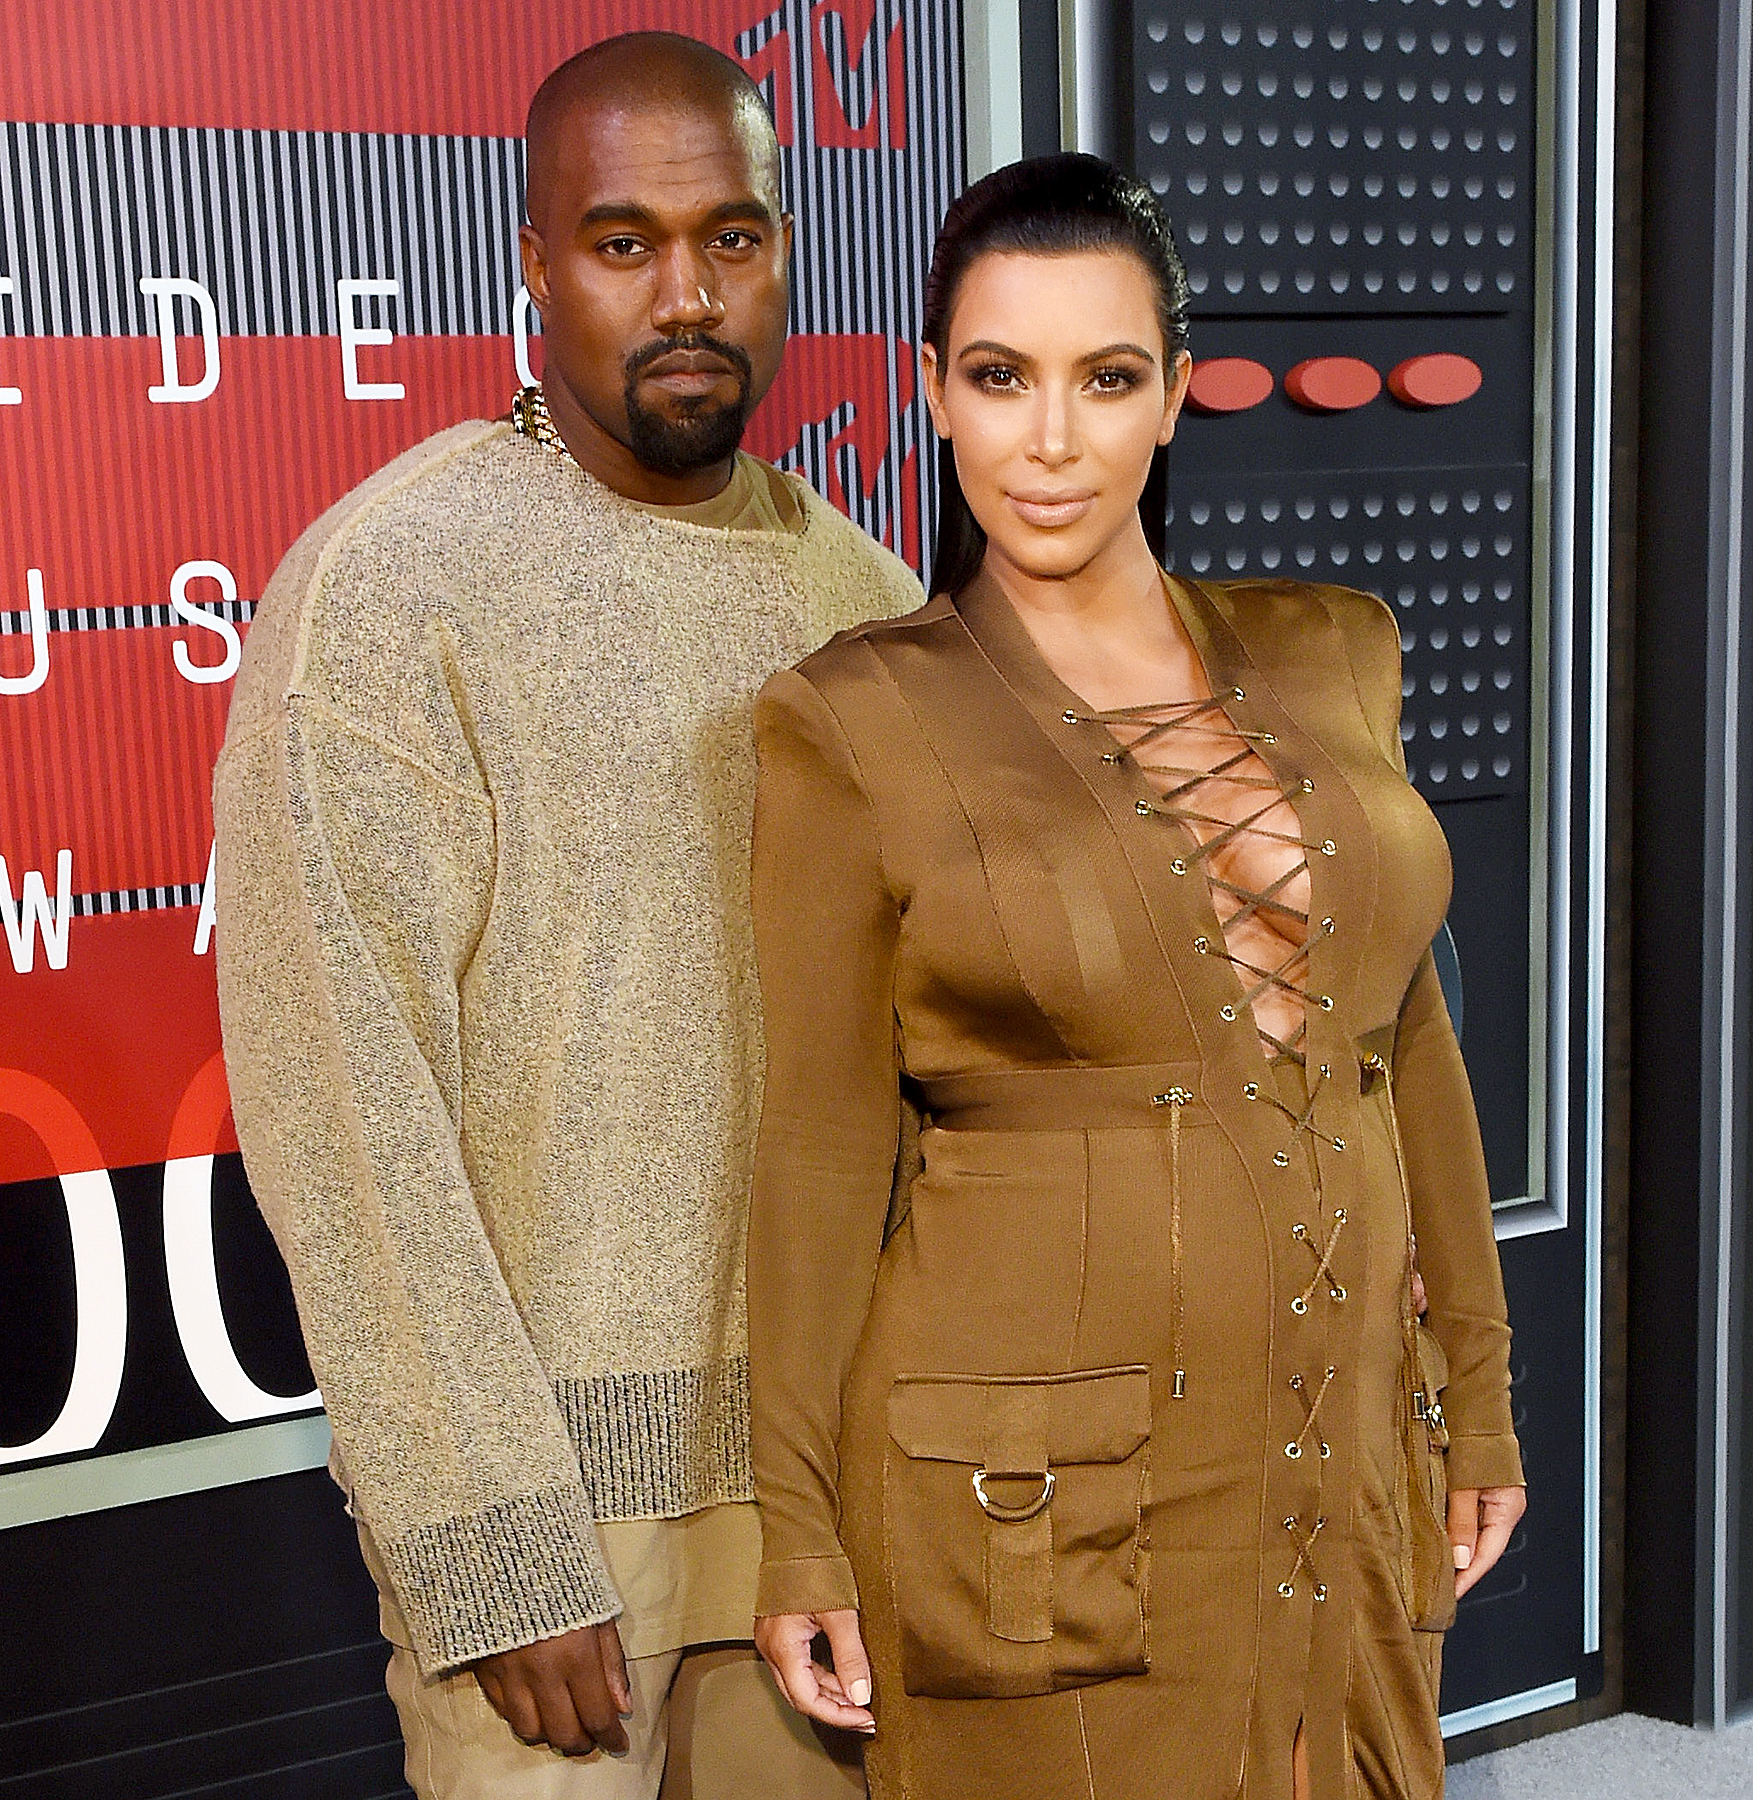 Kim Kardashian and Kanye West Baby Photos | PEOPLE.com